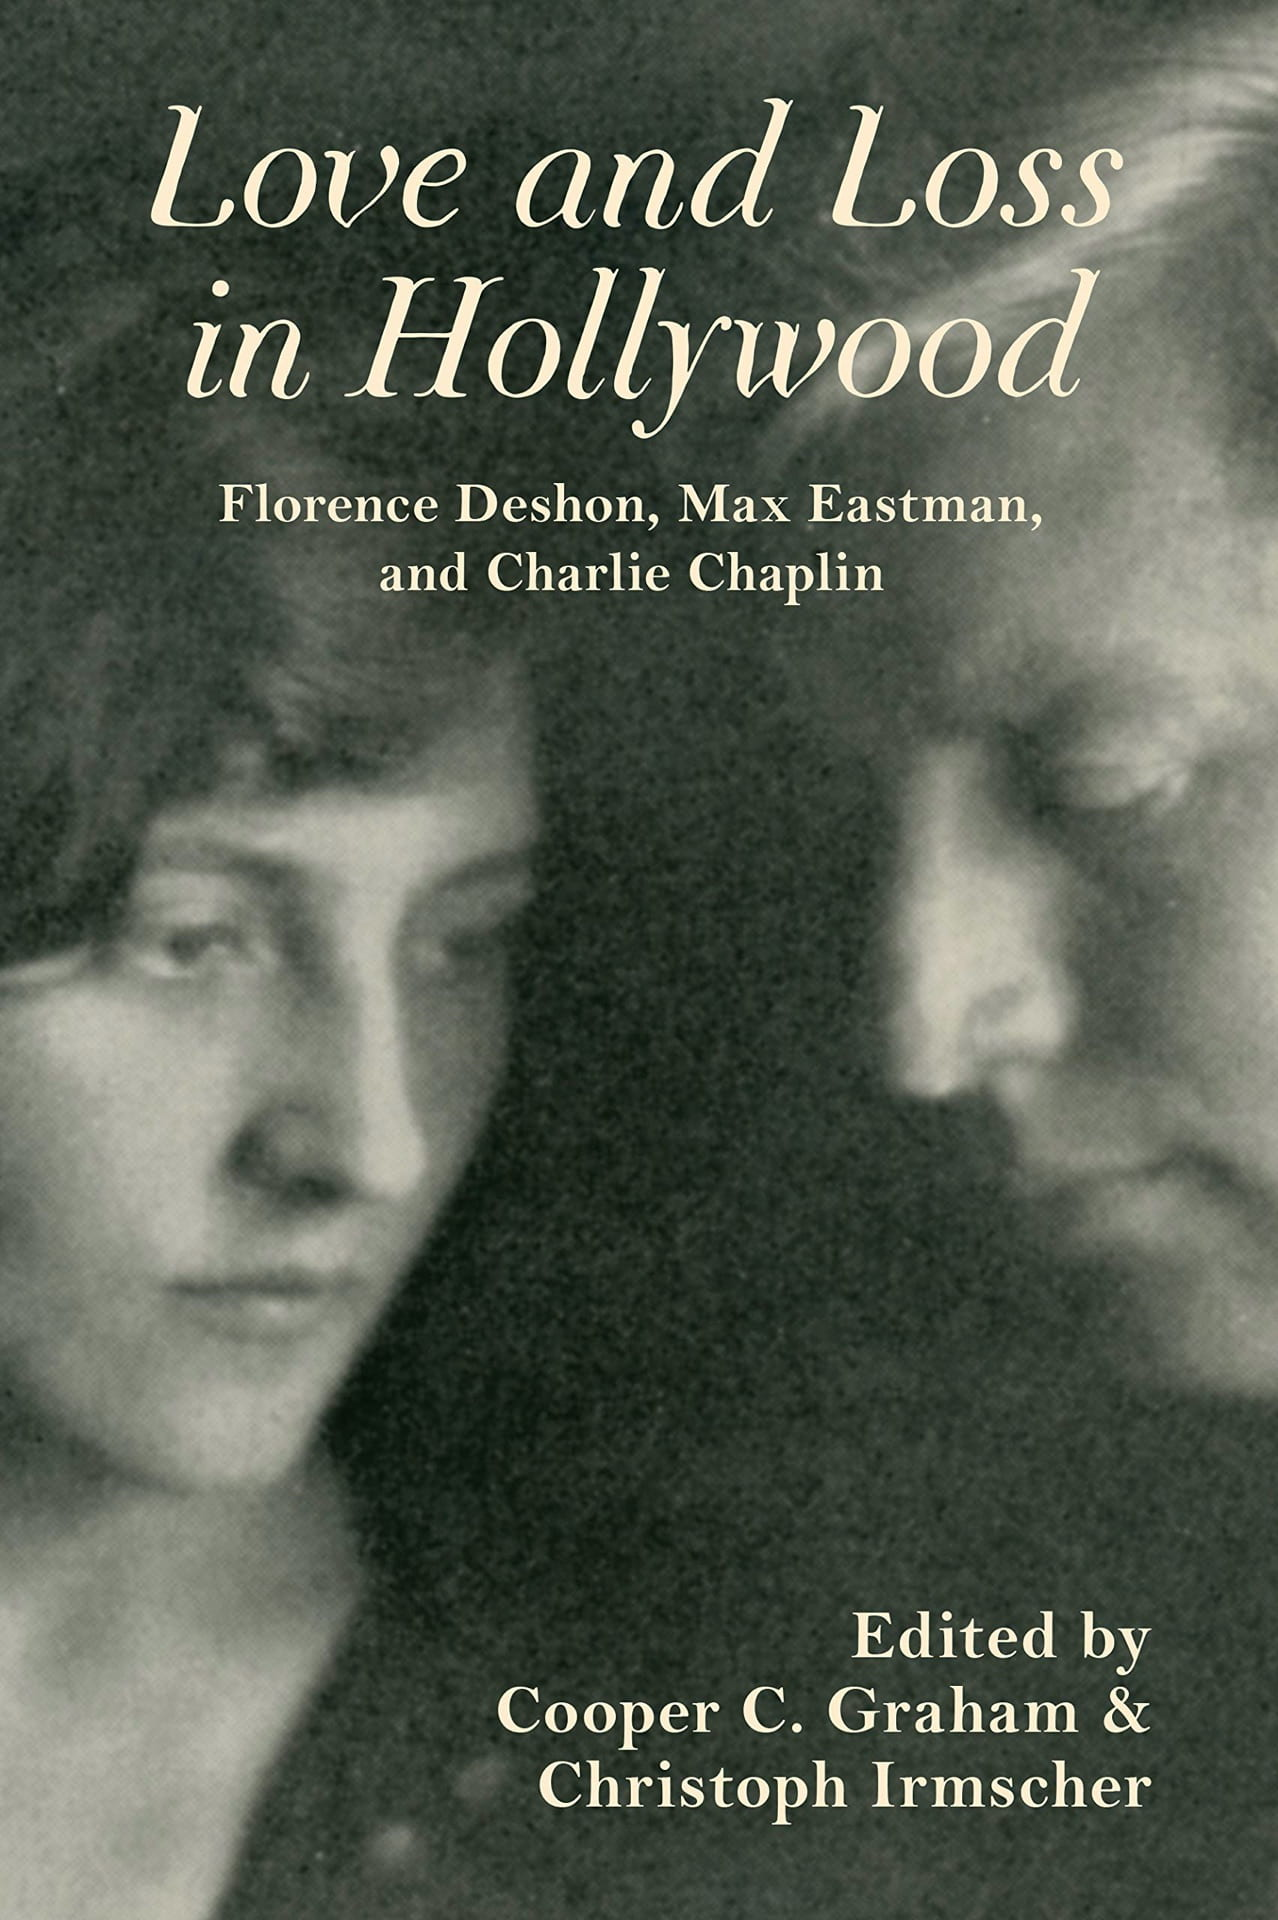 Cover for Love and Loss in Hollywood edited by Cooper C. Graham and Christoph Irmscher. (Photograph by Margarete Mather, courtesy of The Max and Yvette Eastman Estate)